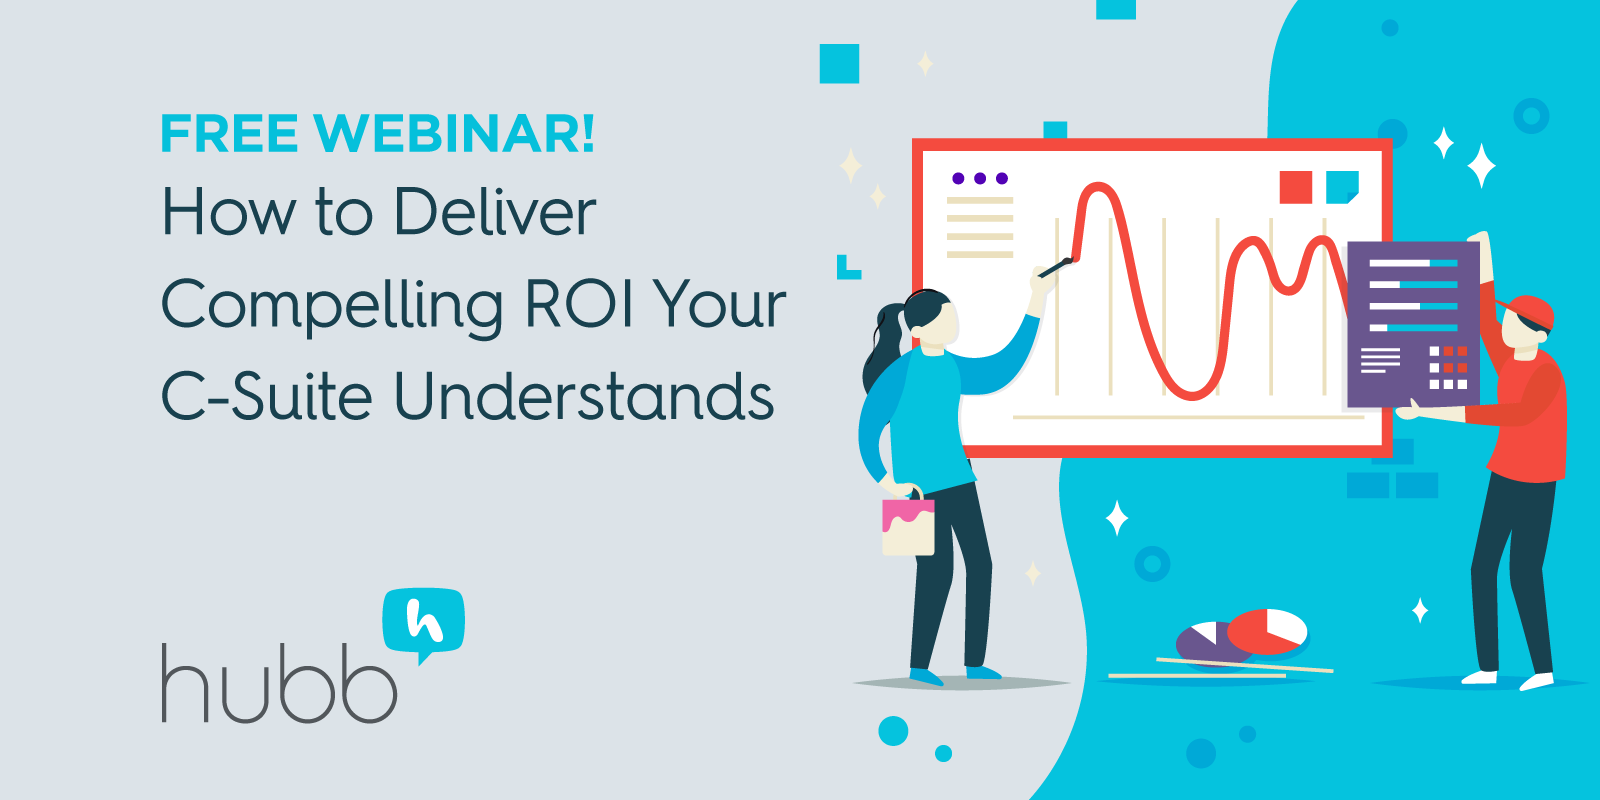 [Webinar] How to Deliver Compelling ROI Your C-Suite Will Understand